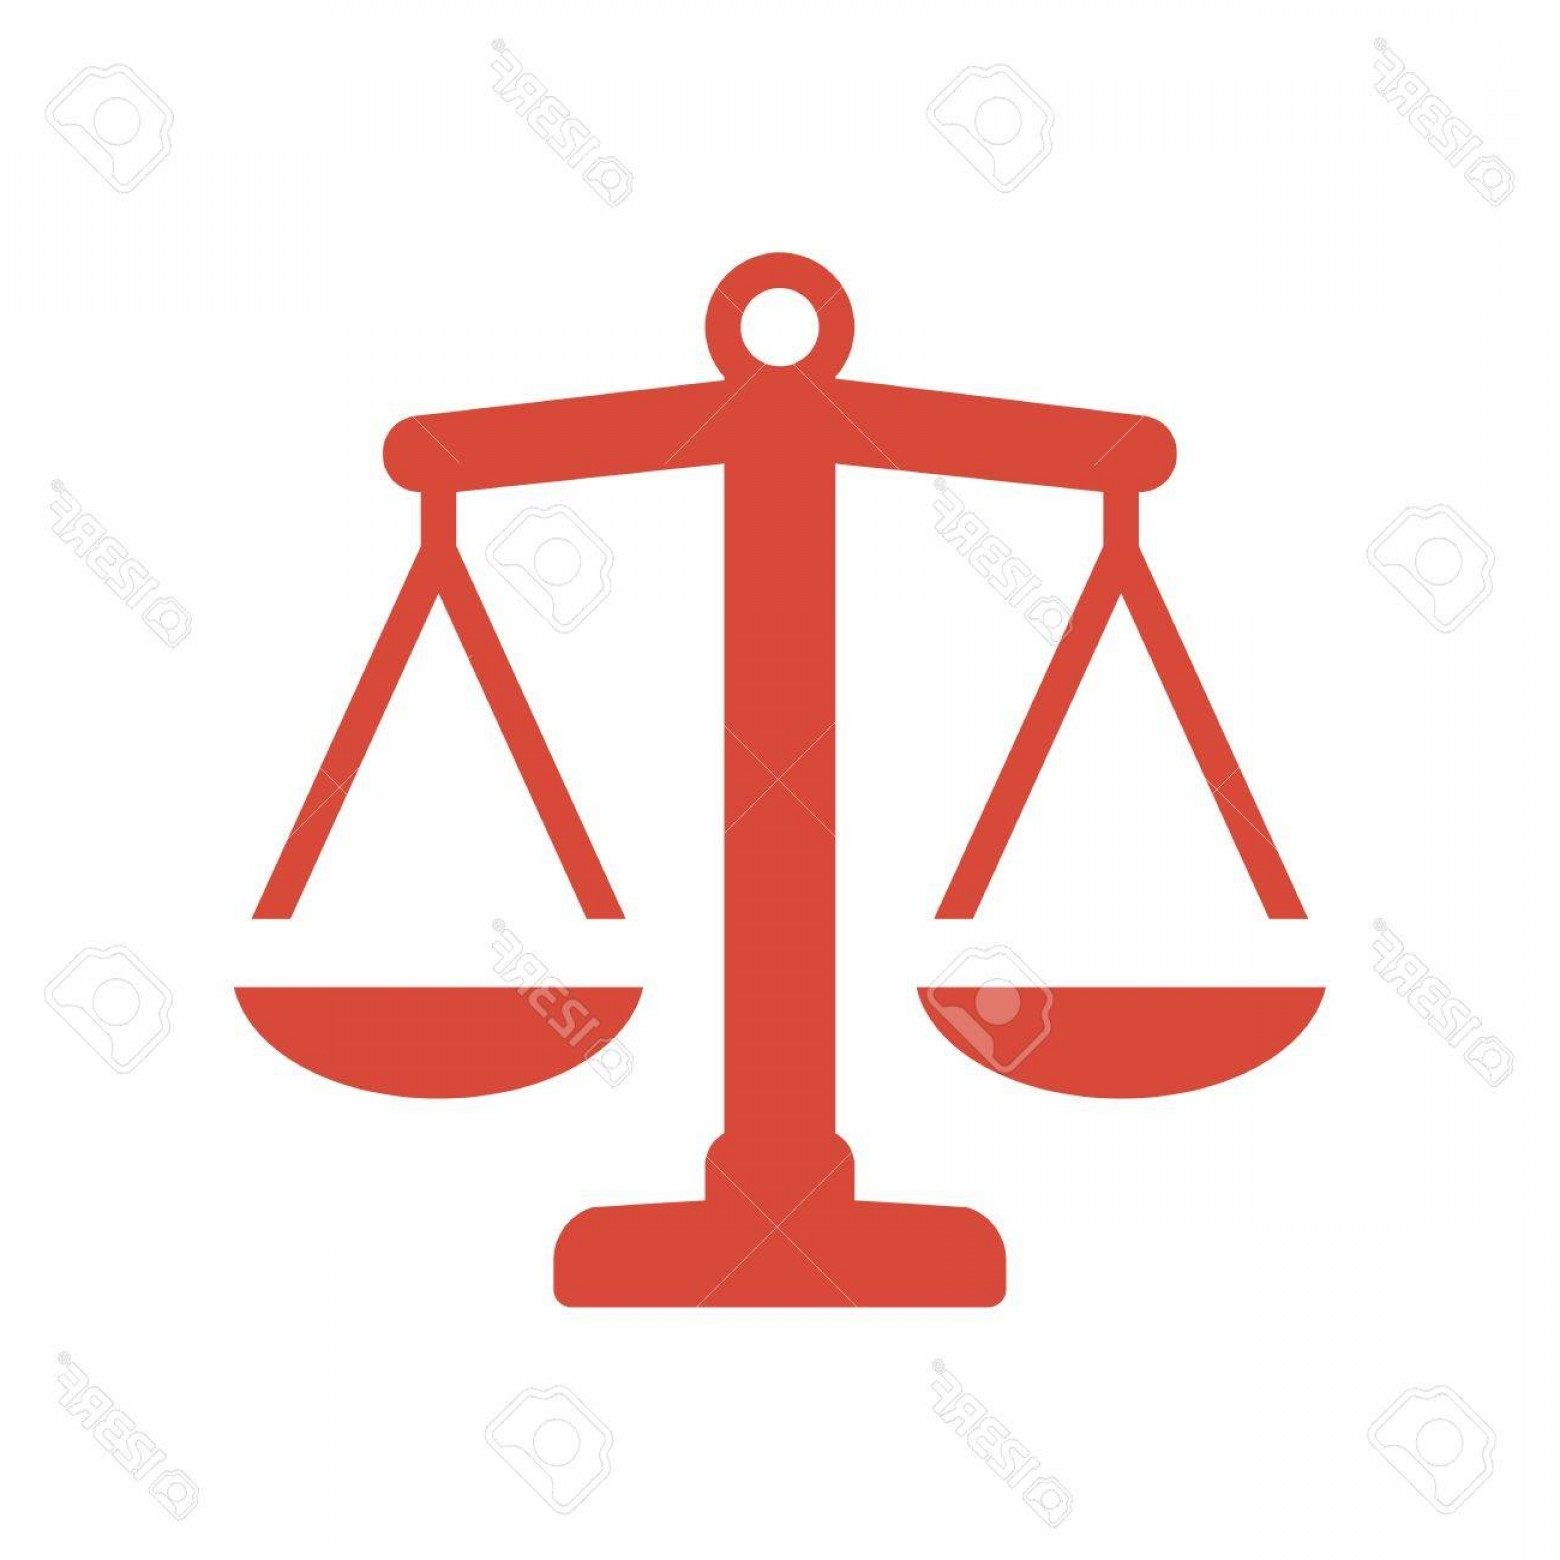 Balance Symbol Vector: Photostock Vector Law Firm Icon With Vintage Scale In Balance Symbol Vector